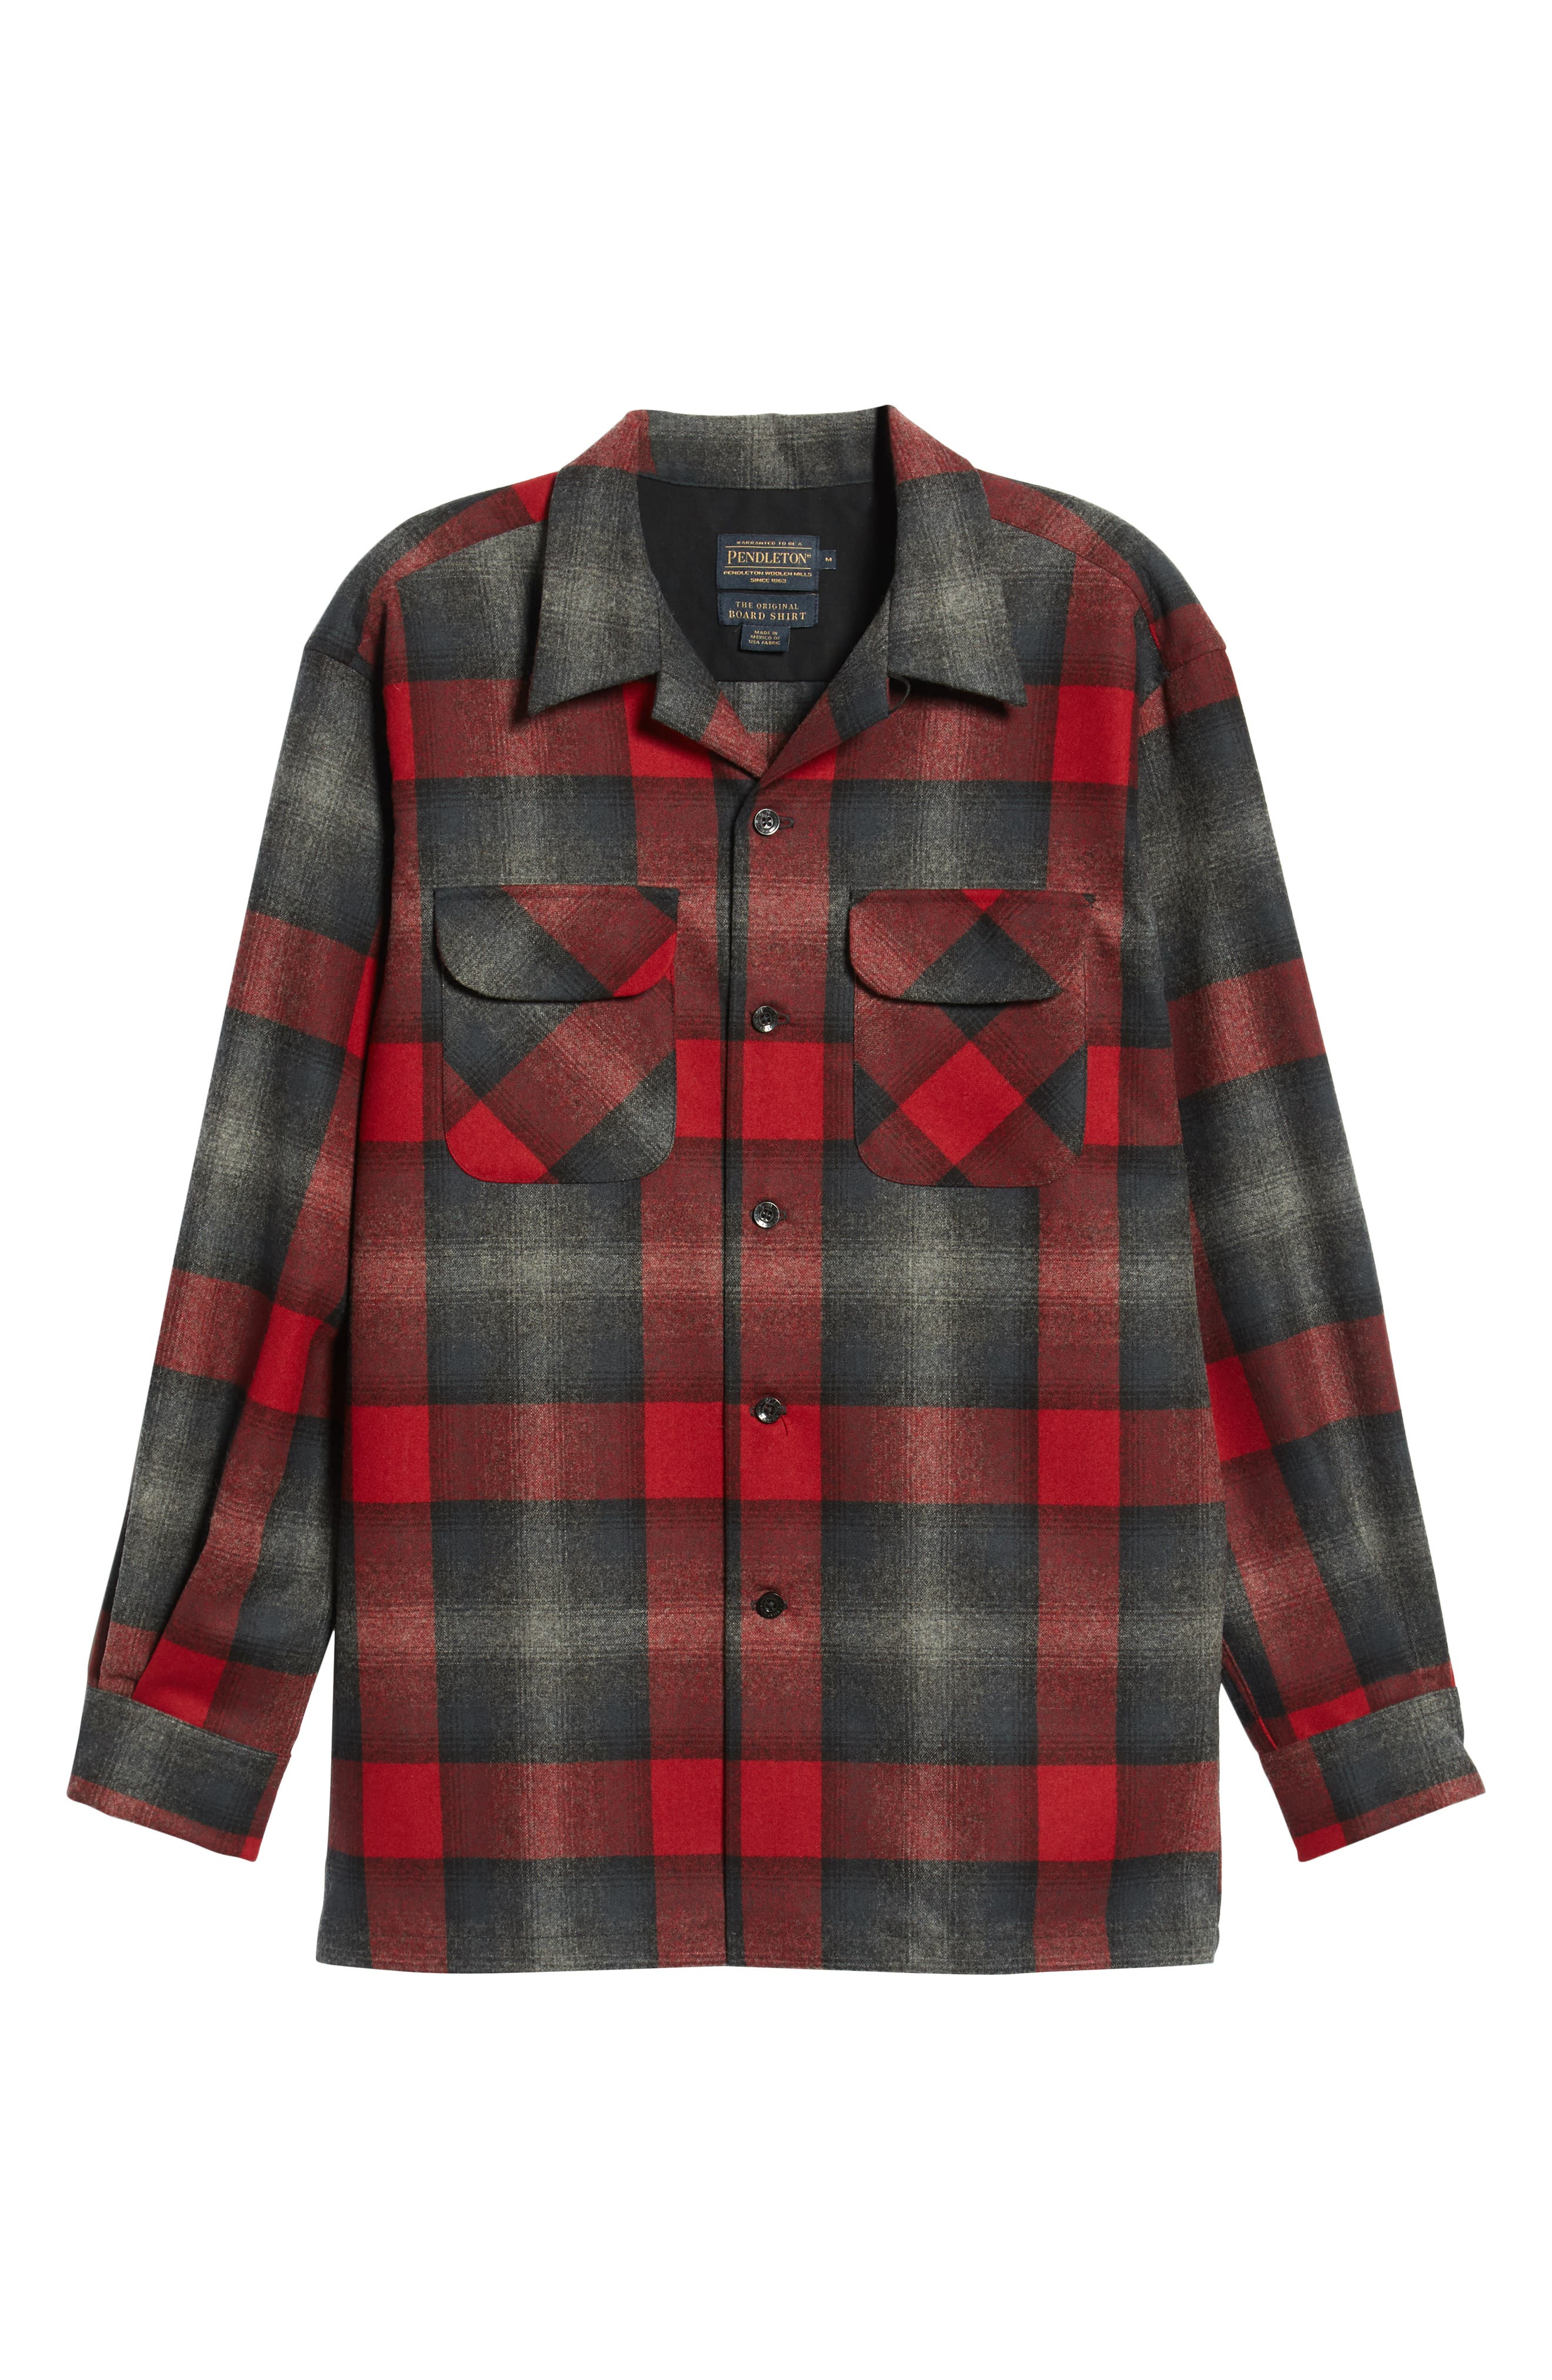 Board Wool Flannel Shirt,                             Alternate thumbnail 5, color,                             BLACK/ GREY MIX/ RED OMBRE